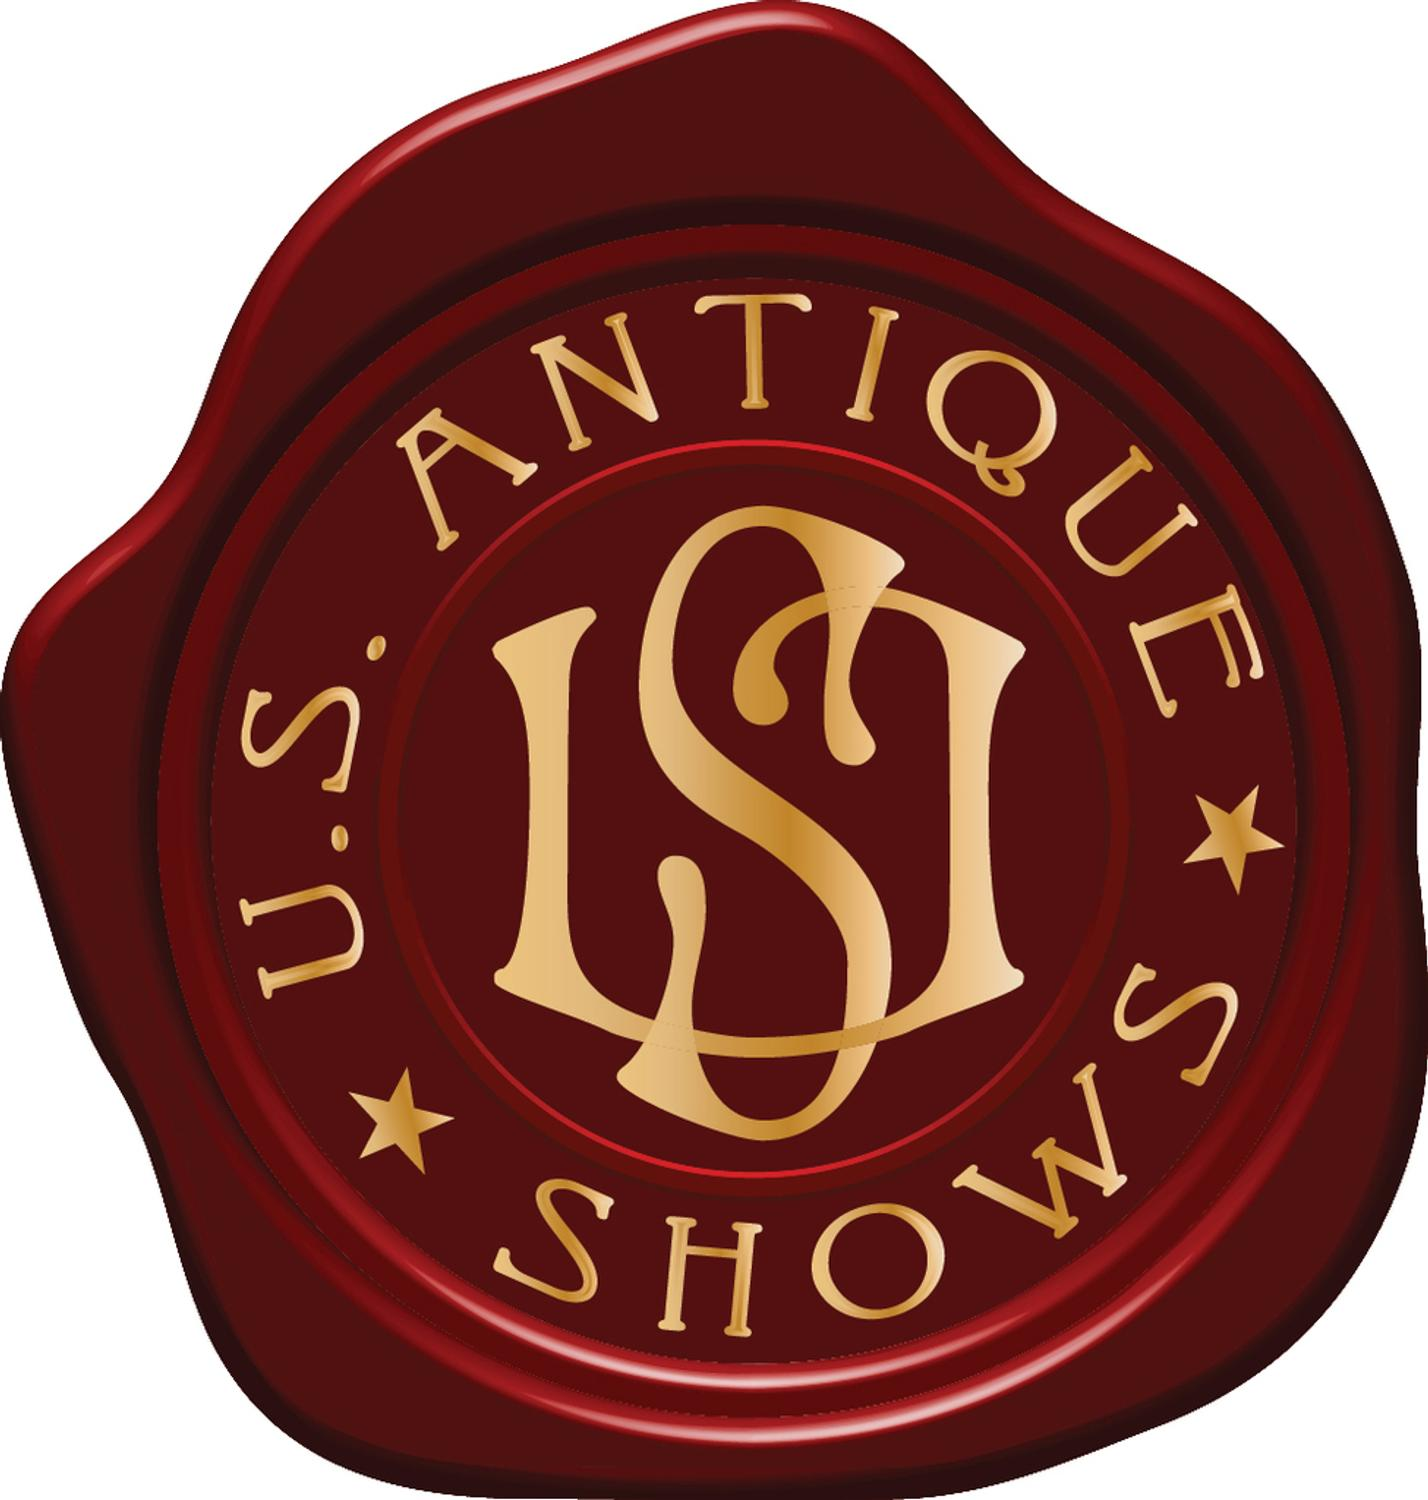 Miami antique jewelry watch show moves show dates for Miami beach jewelry watch show